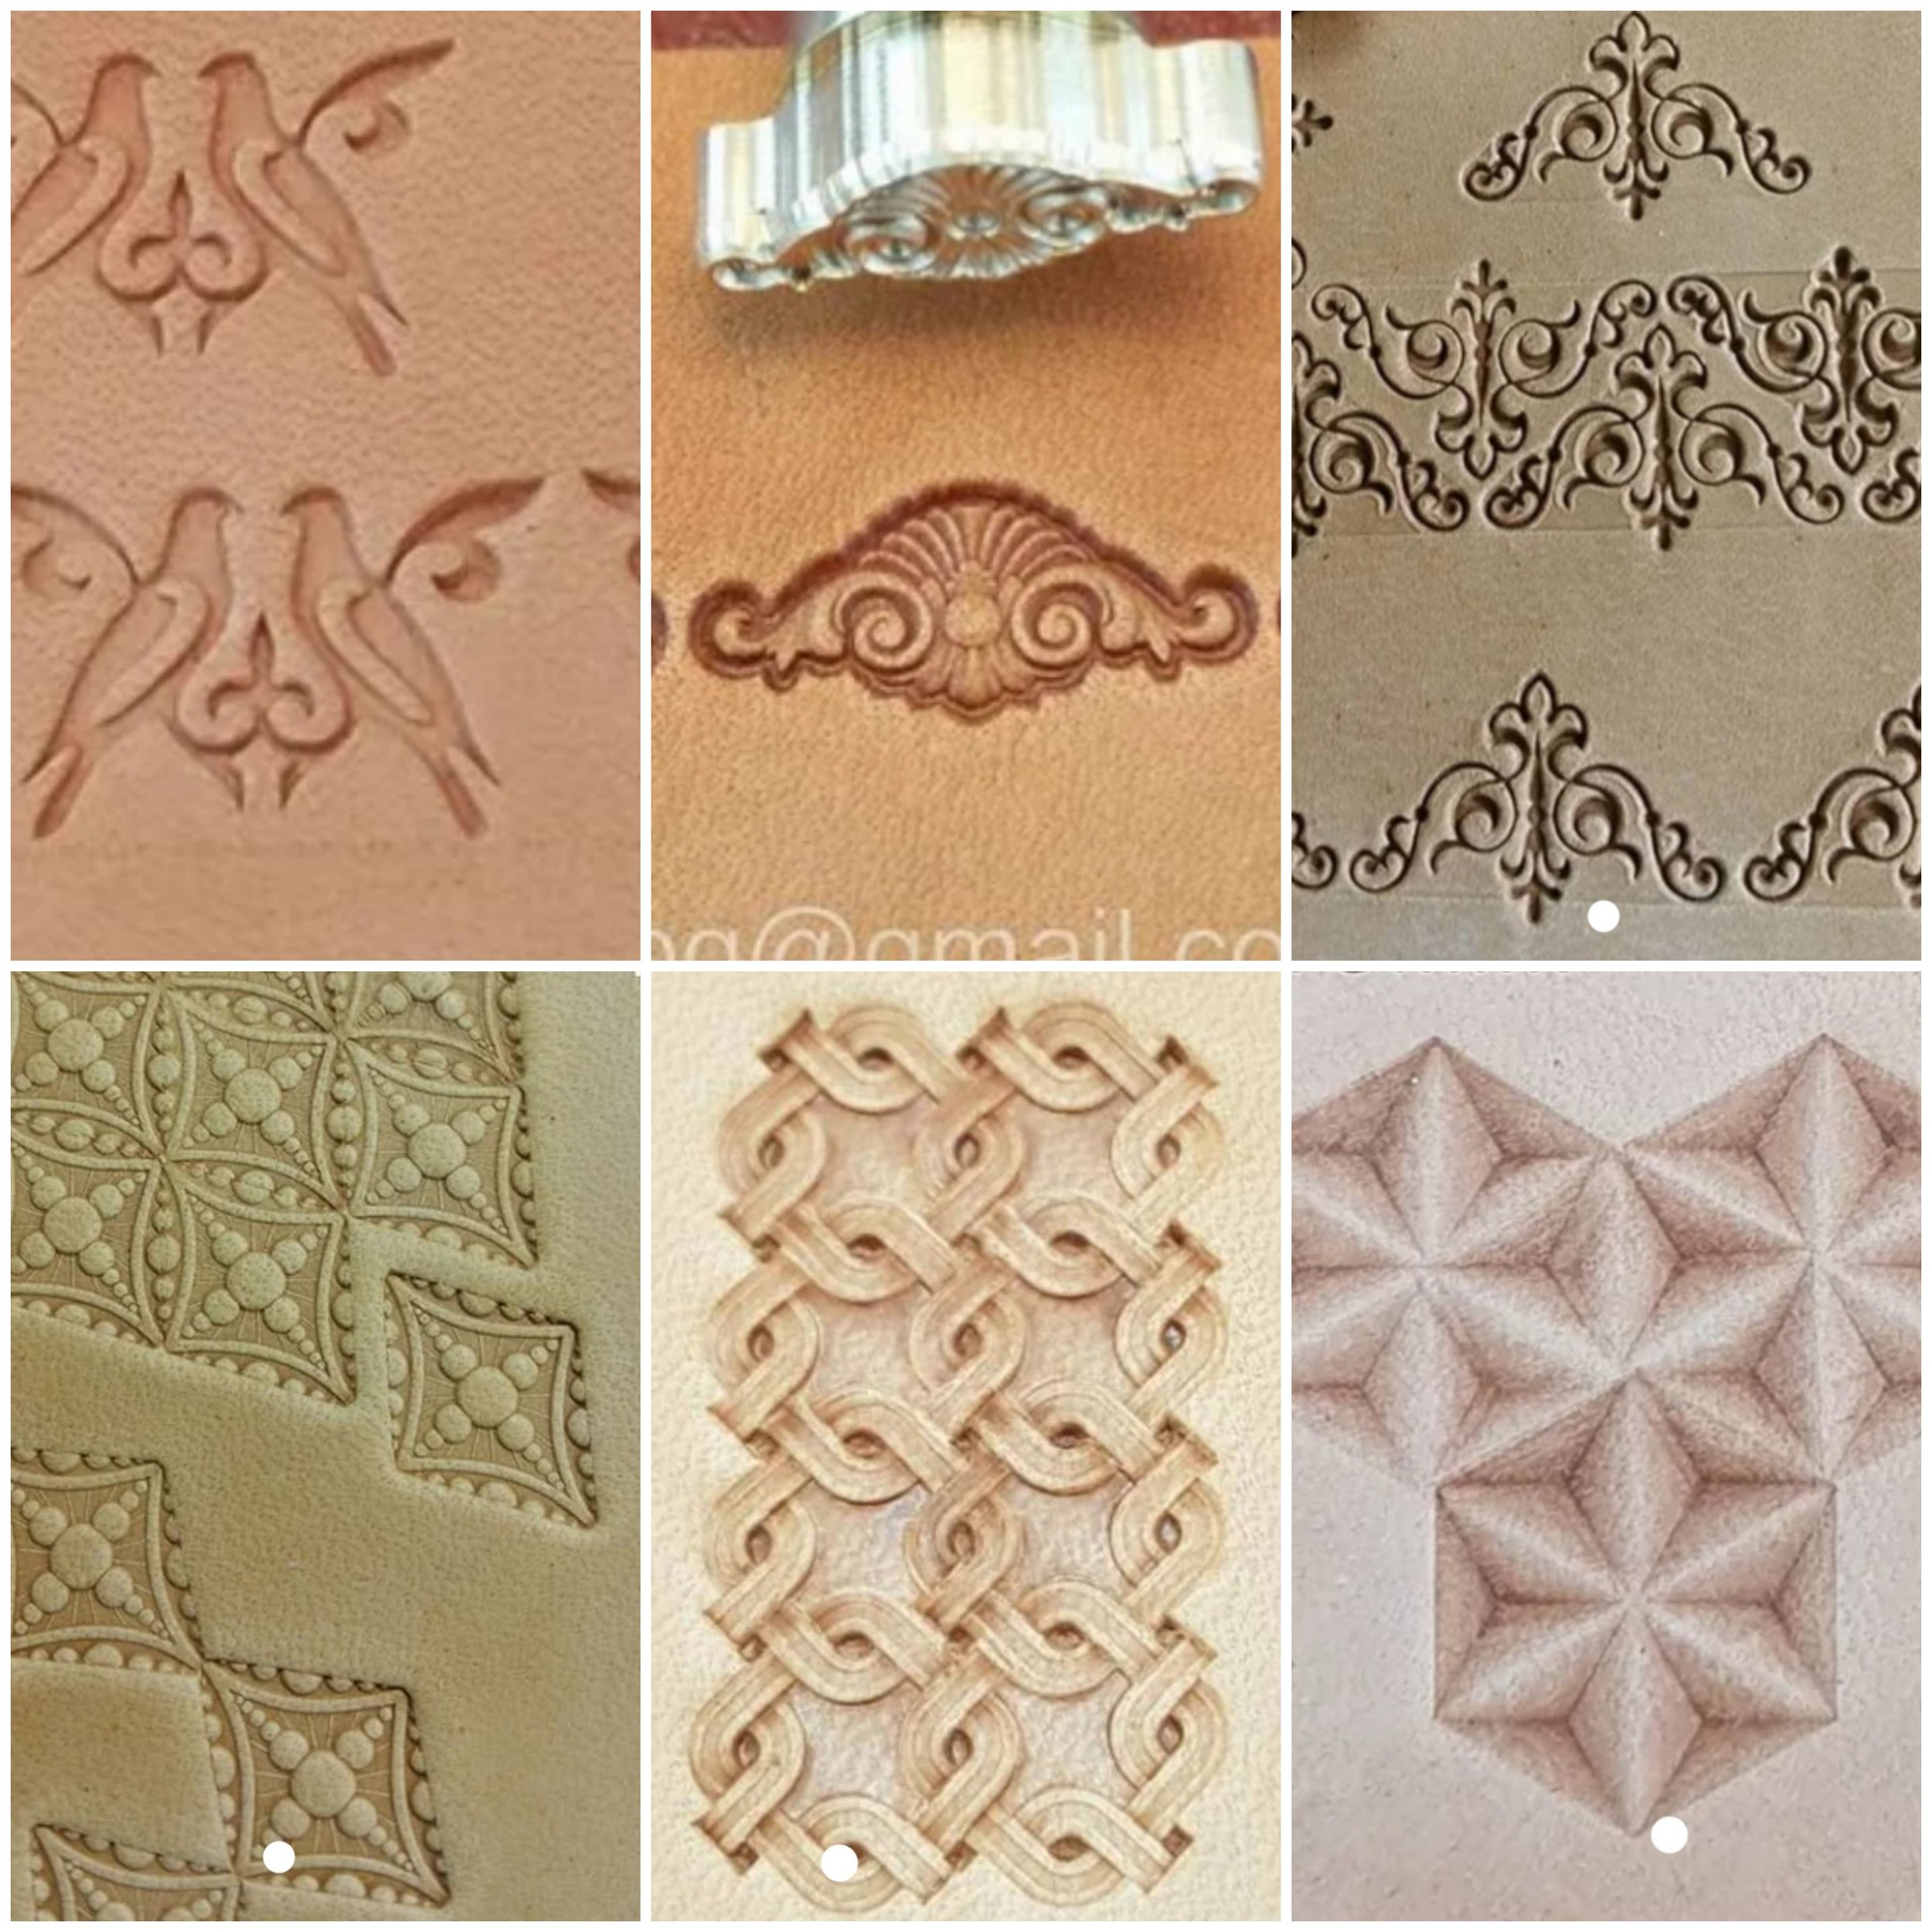 Stamp Batch 1 - Please quote batch number with stamp number1. Love Birds2. Shell Scroll3. Triangle Scrolls4. Bubble Diamonds5. Intertwined Squares6.Convex Stars